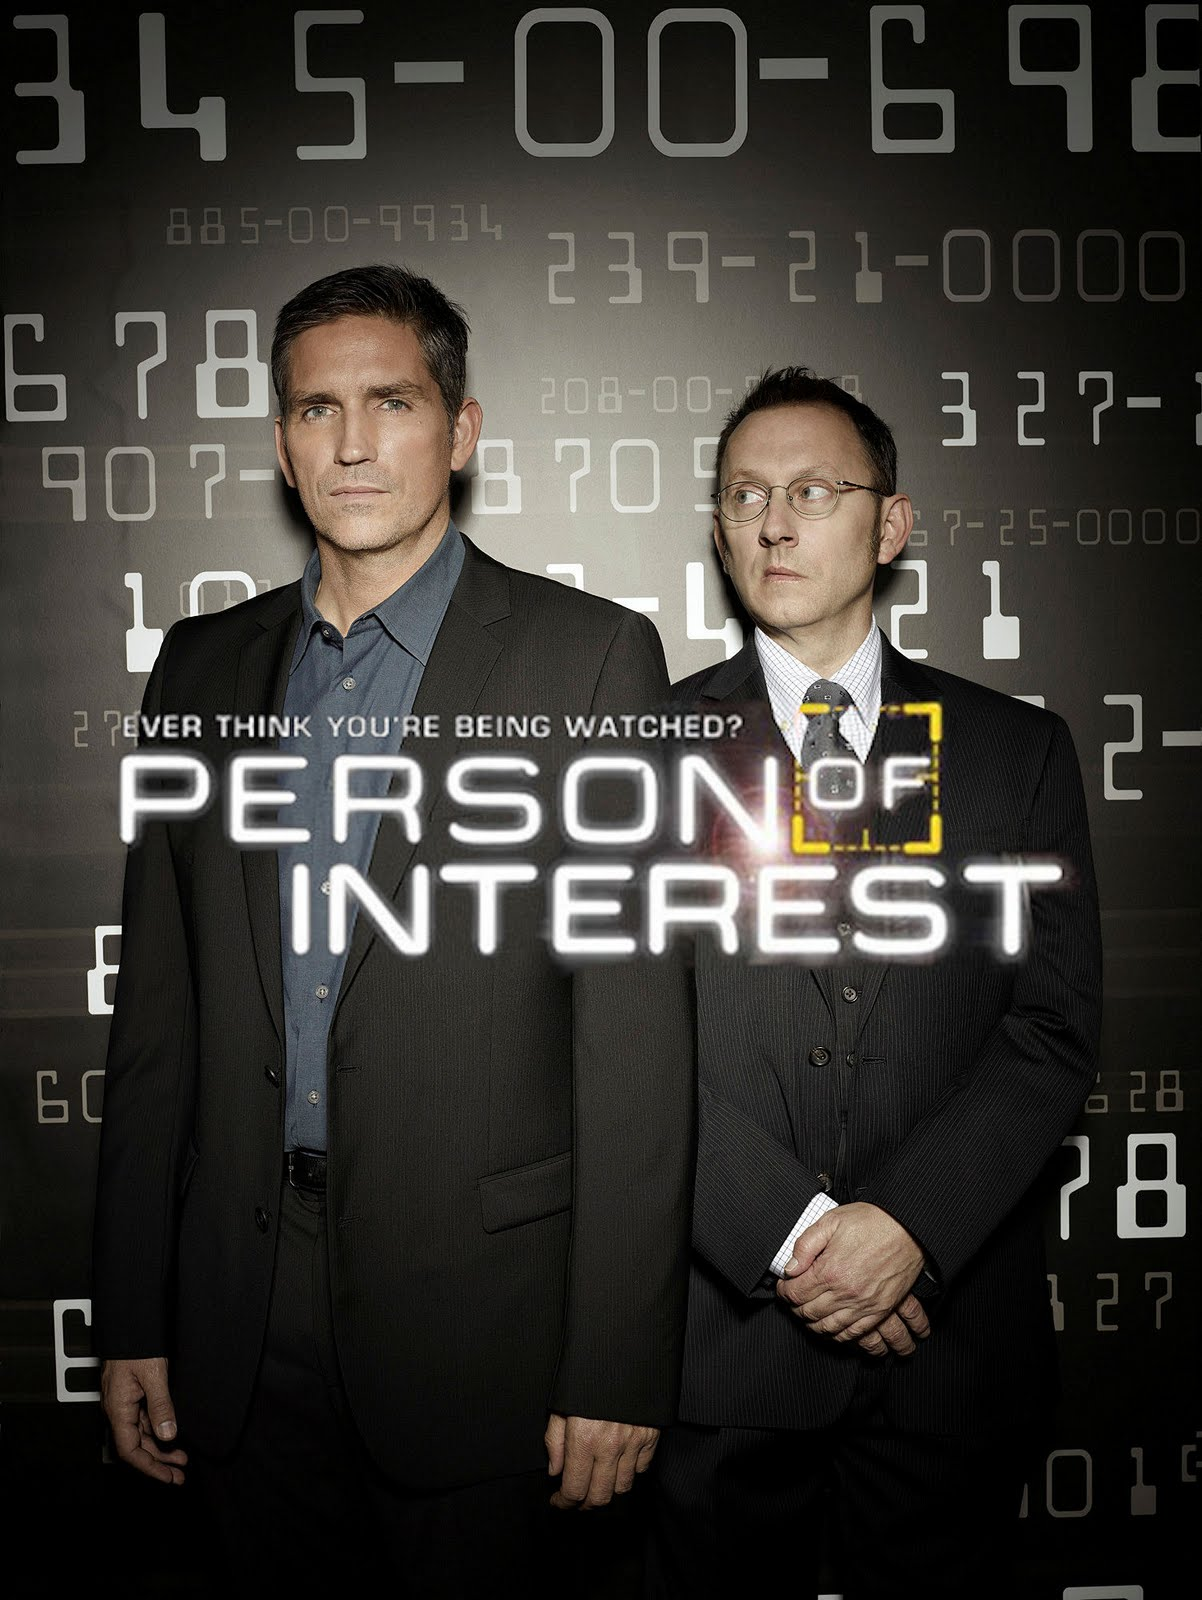 Bs To Person Of Interest